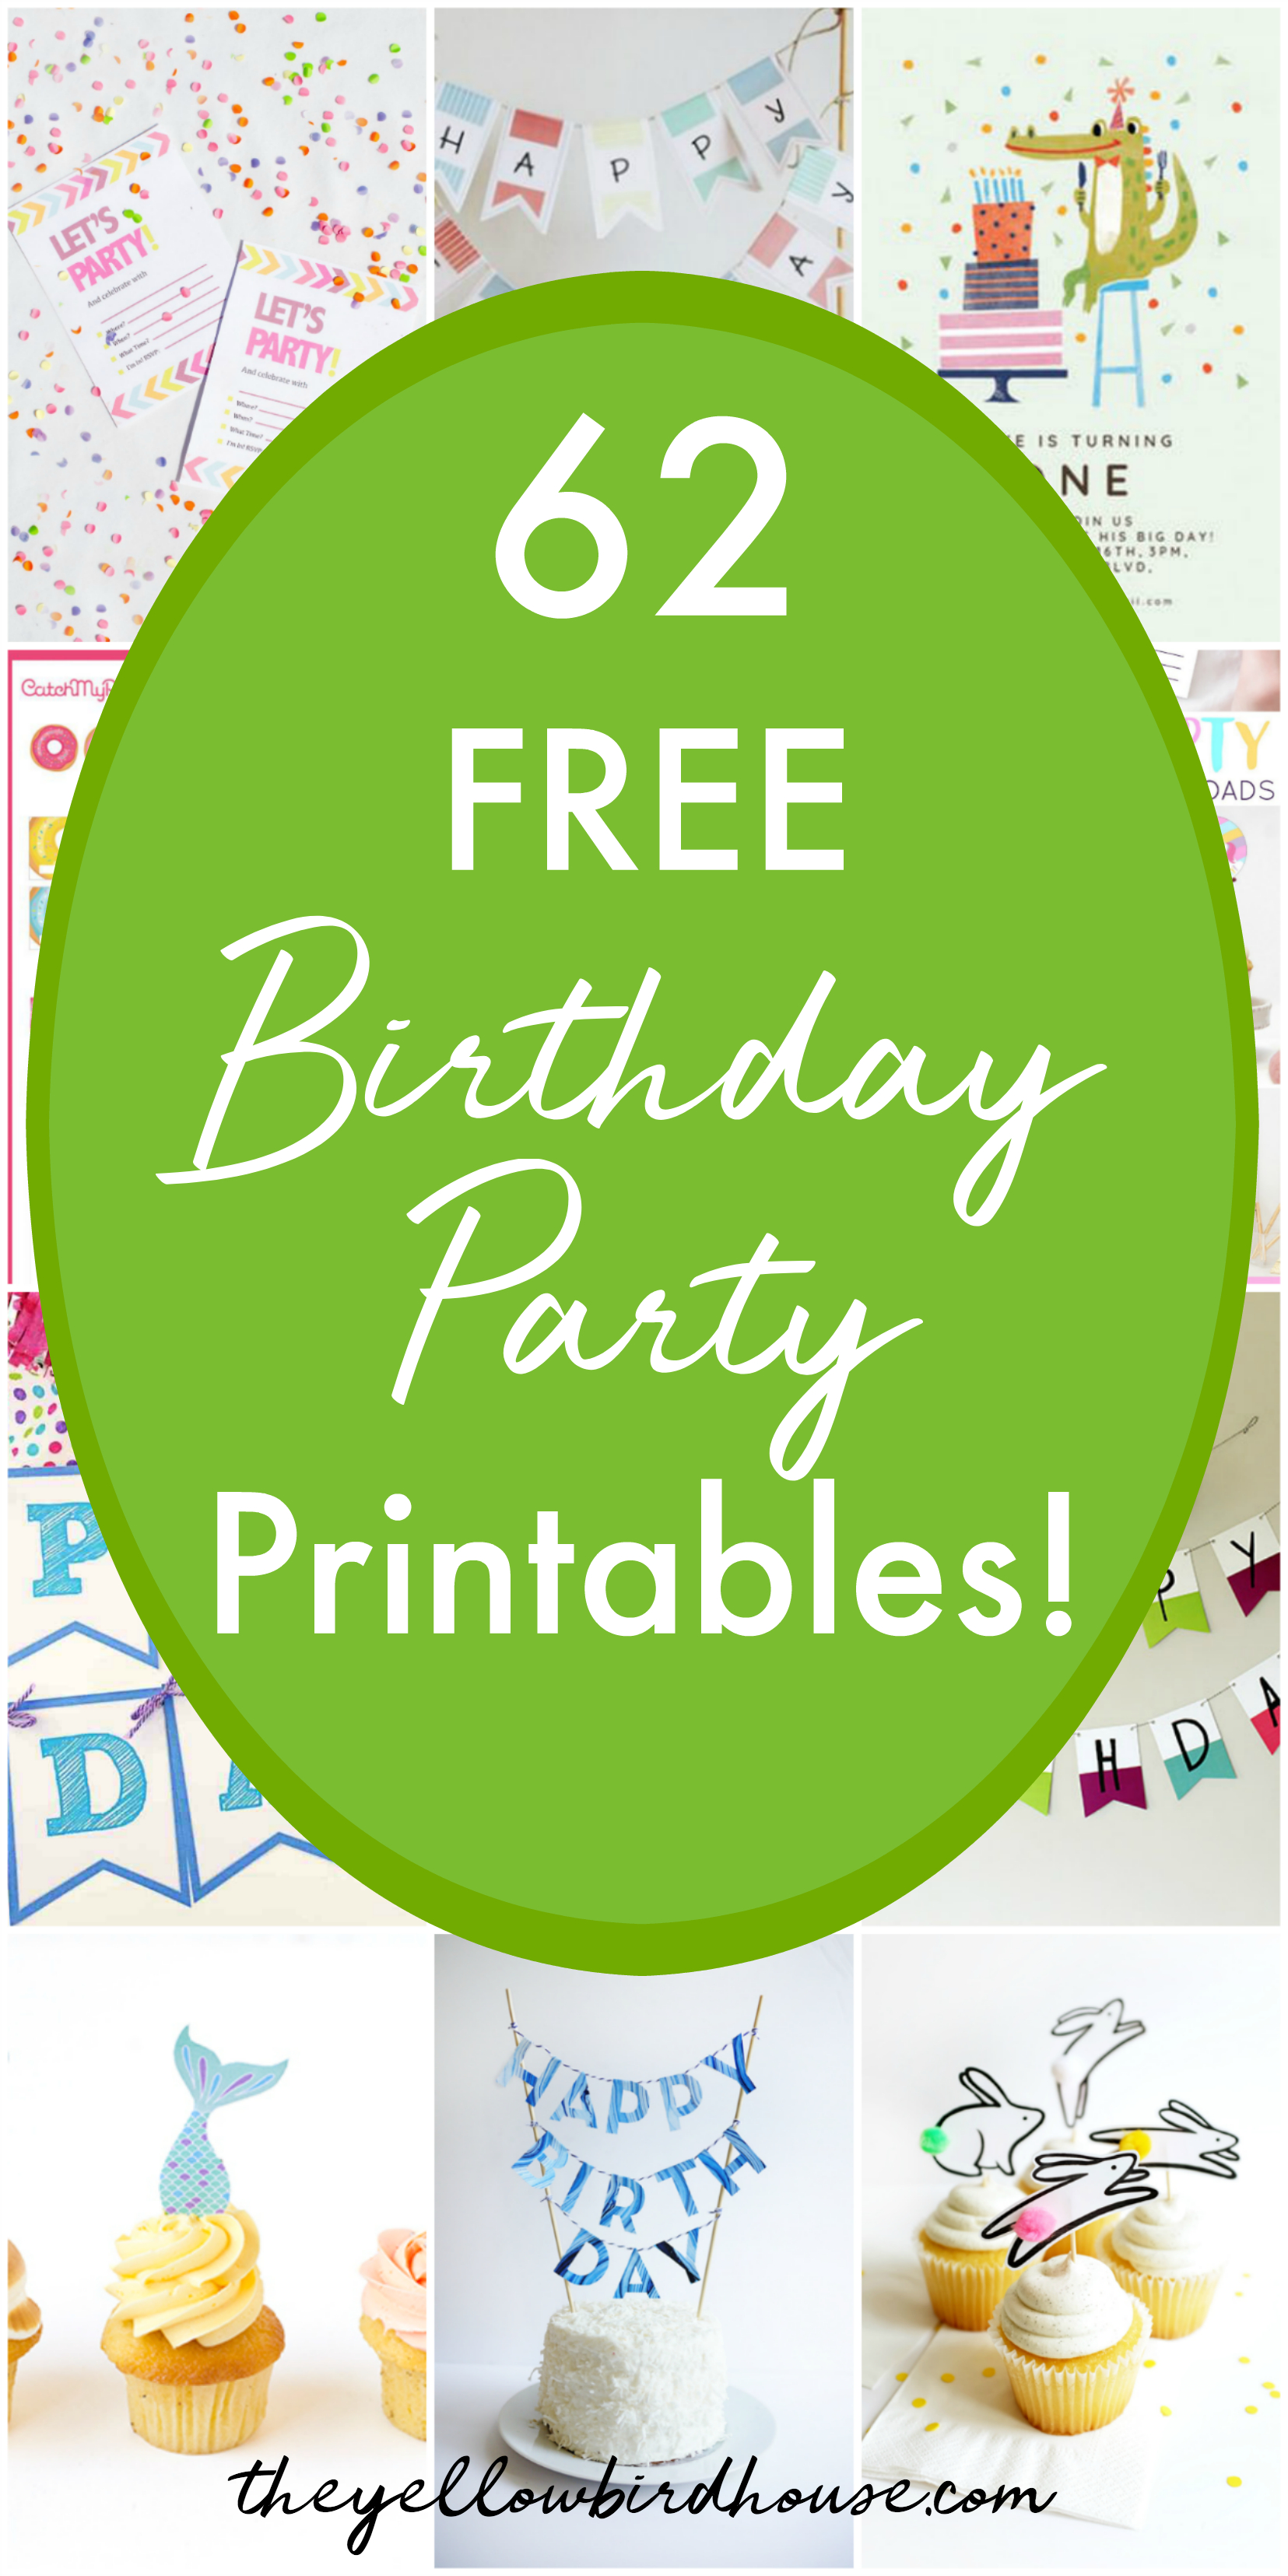 62 Free Birthday Party Printables | The Yellow Birdhouse - Free Party Printables